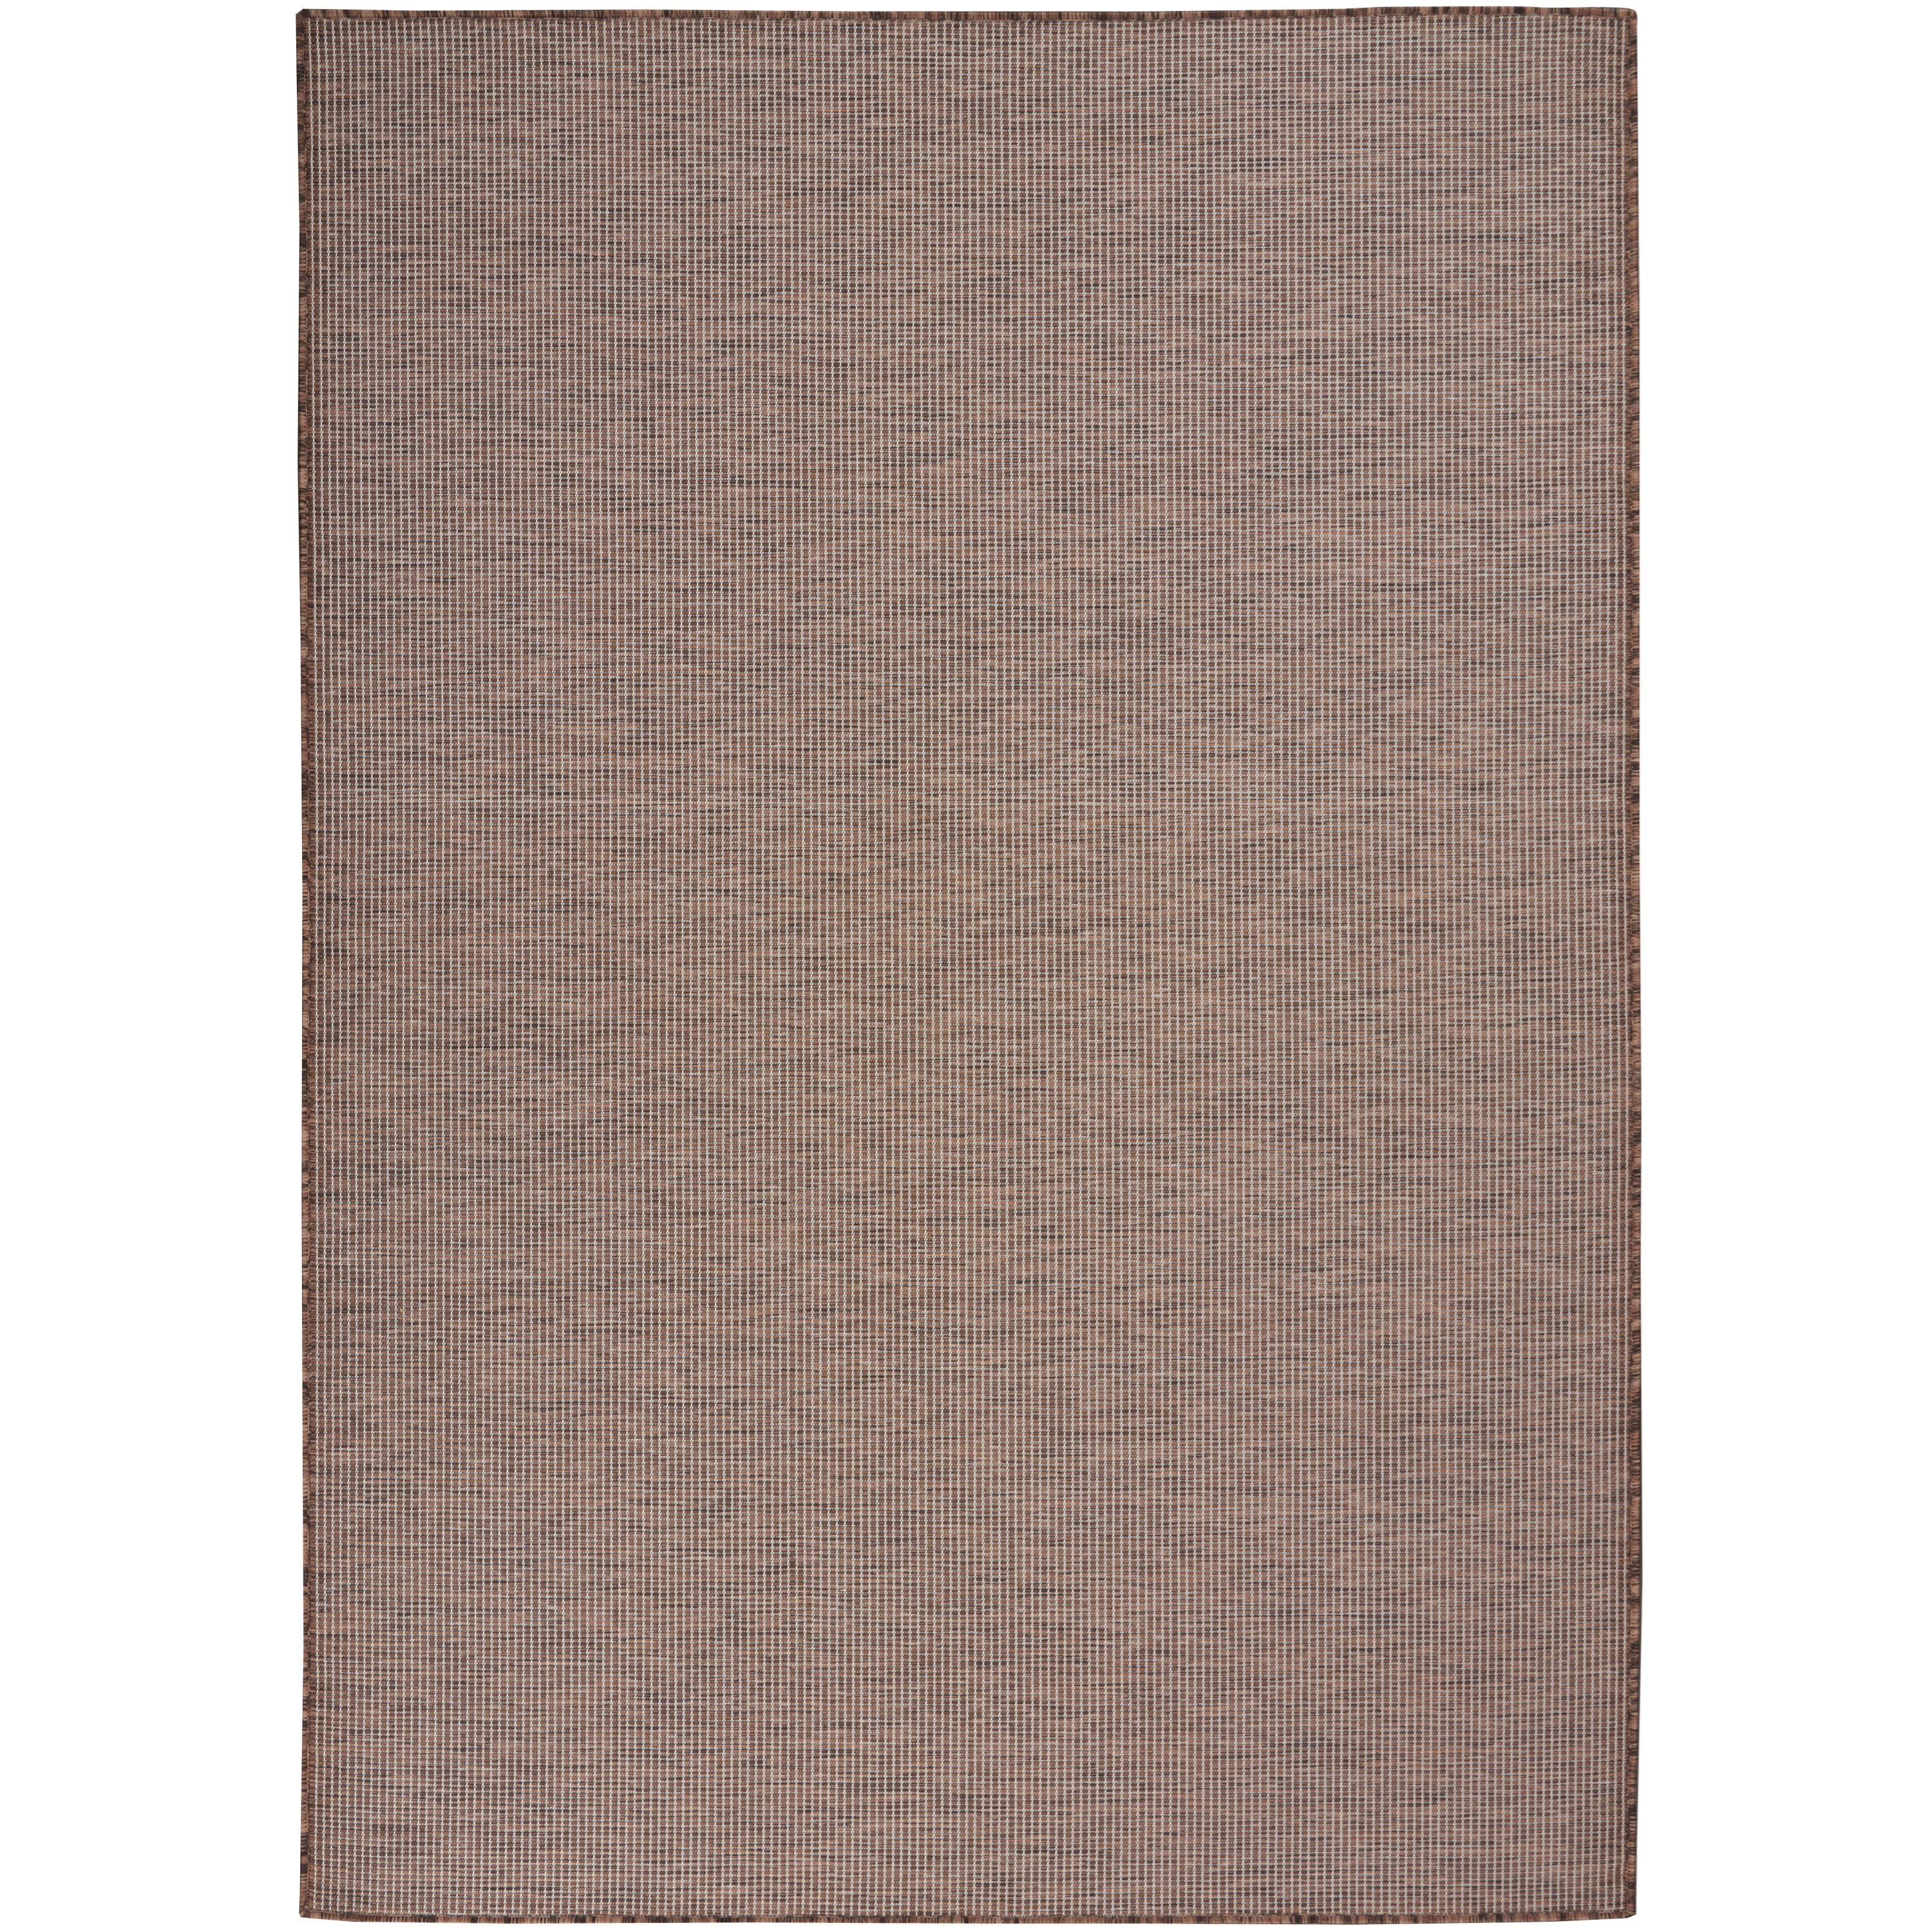 Positano 2020 4' x 6' Rug by Nourison at Home Collections Furniture